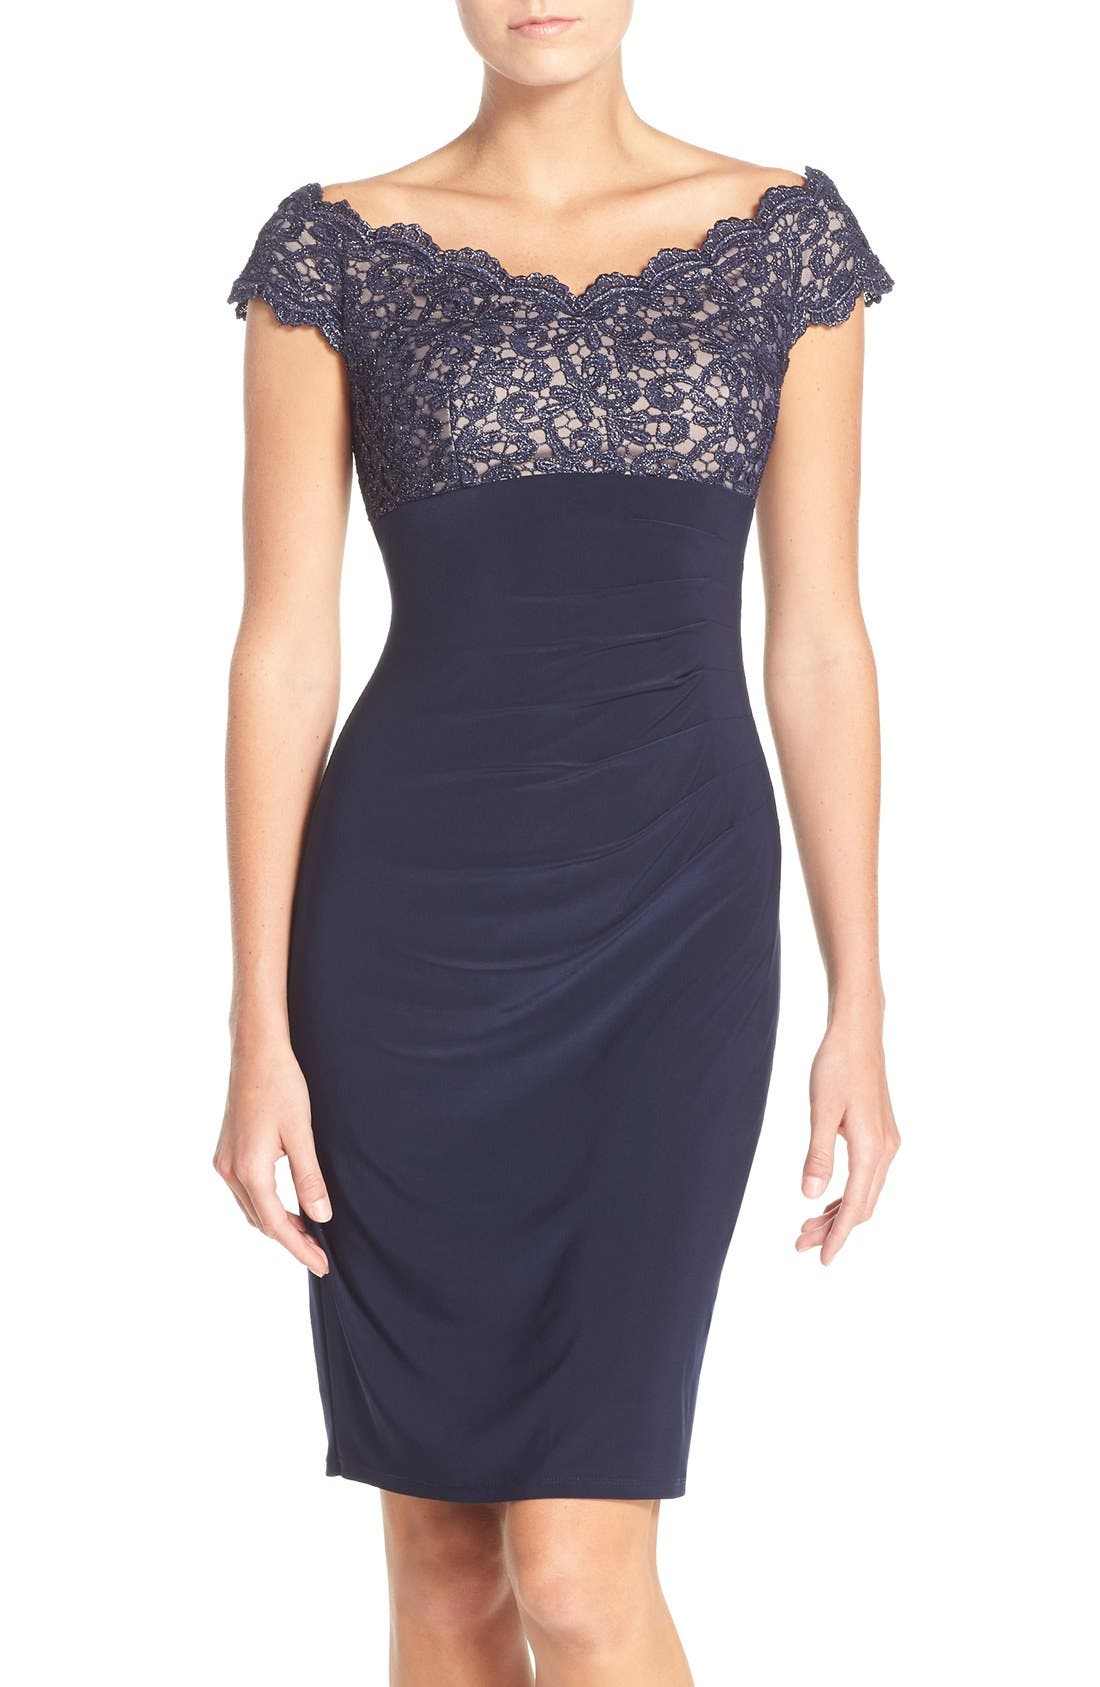 Alternate Image 1 Selected - Xscape Lace & Jersey Off the Shoulder Sheath Dress (Petite)